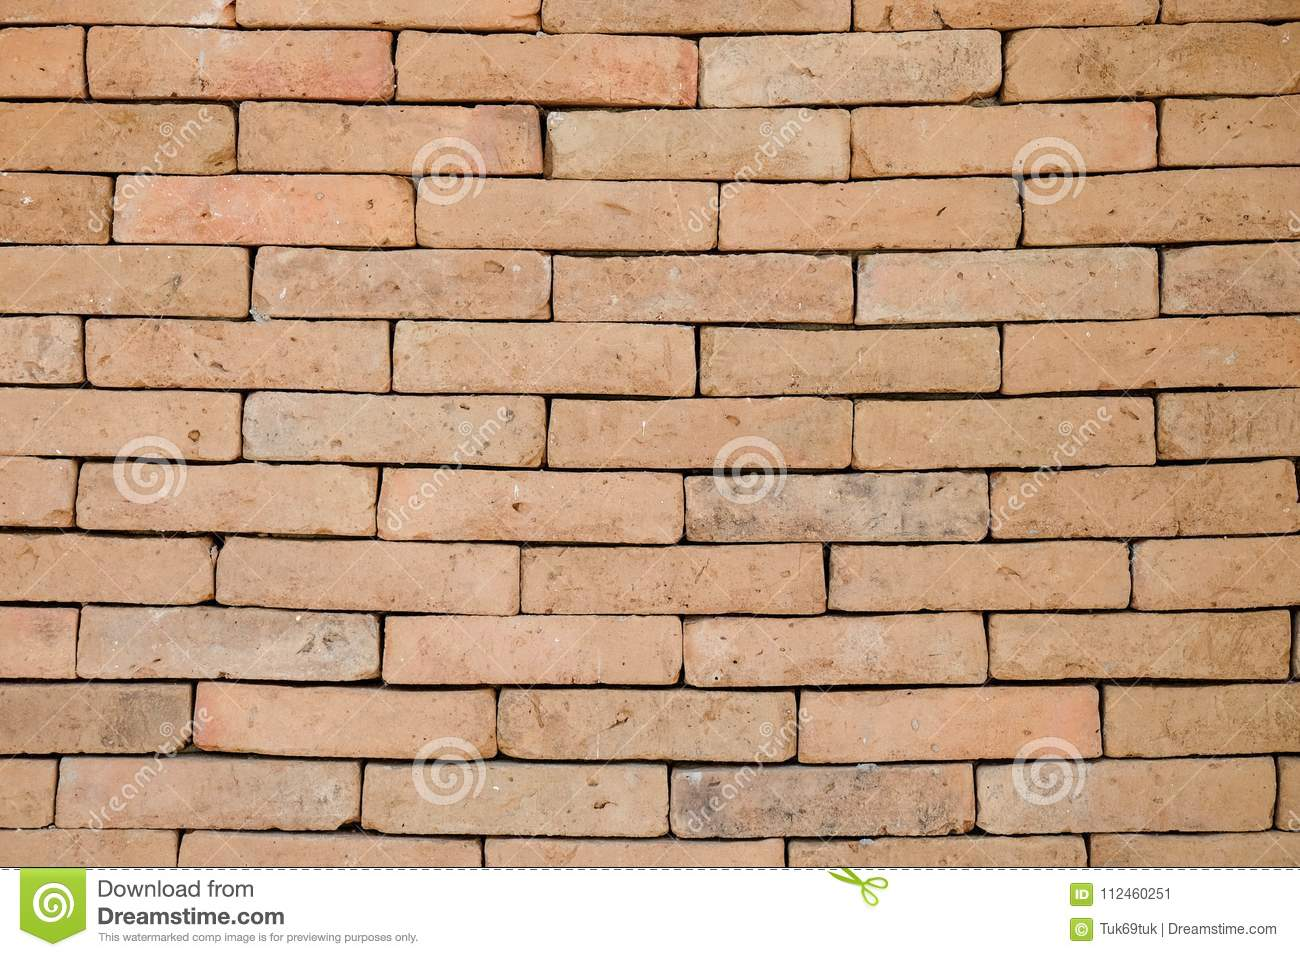 brick wall stone background textures stock image image of concrete